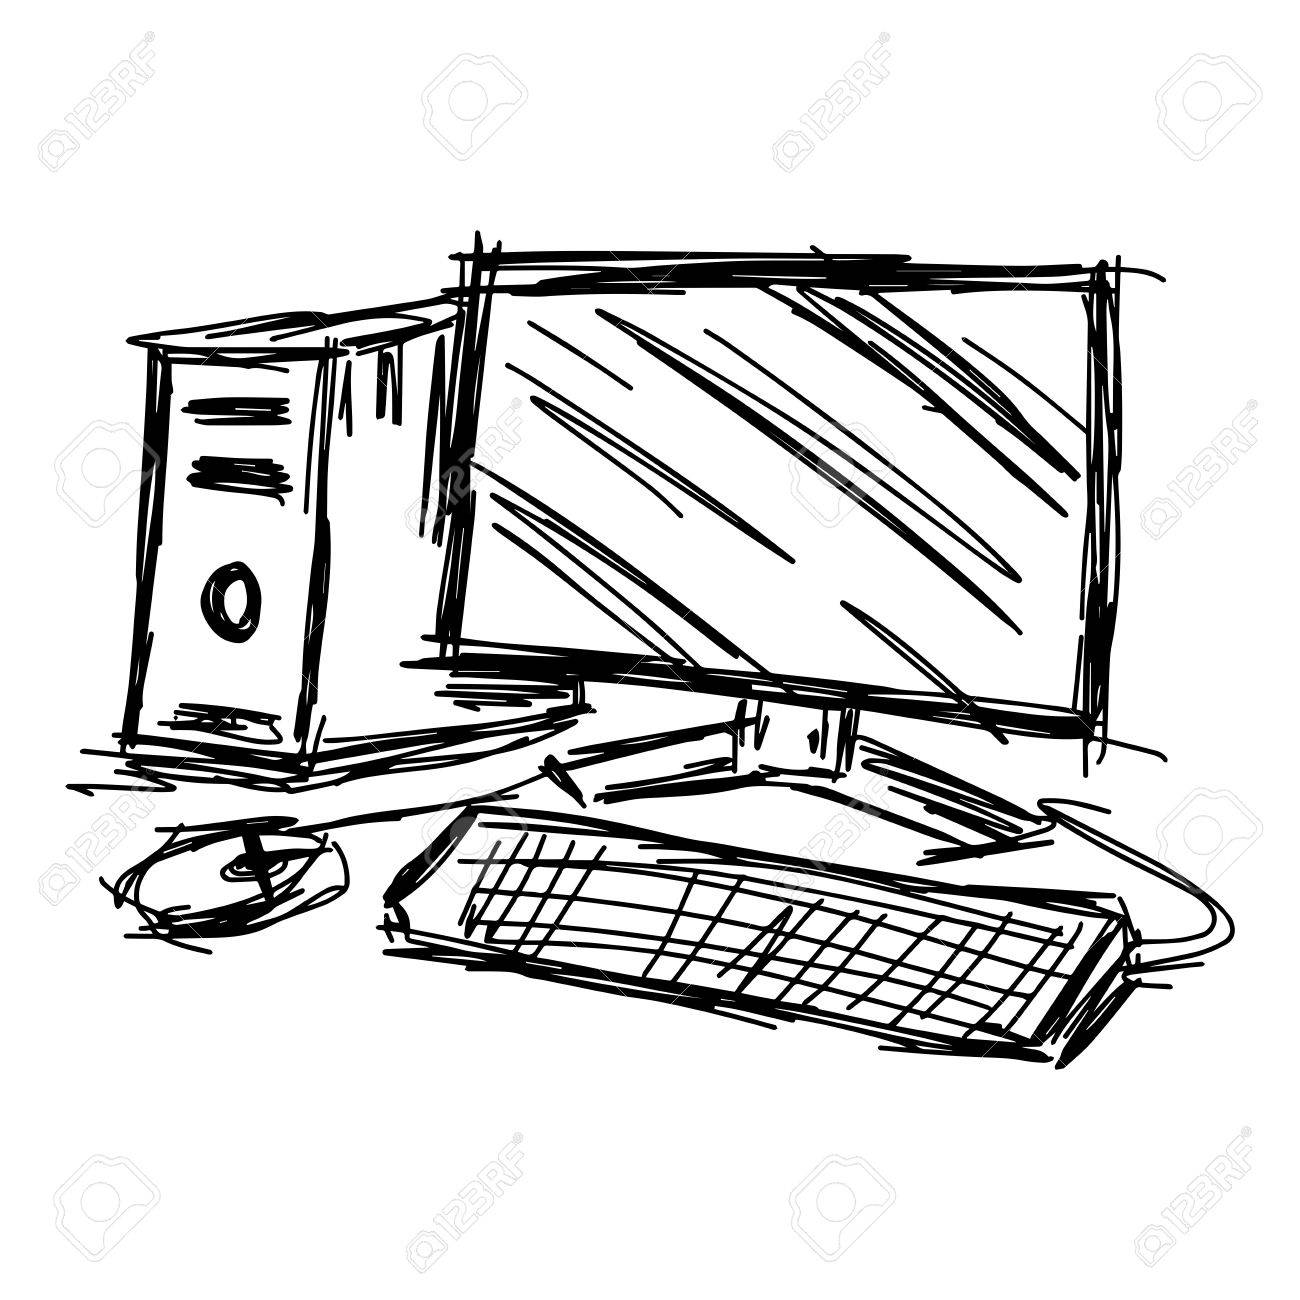 1300x1300 Illustration Doodles Of Sketch Personal Computer Set Royalty Free